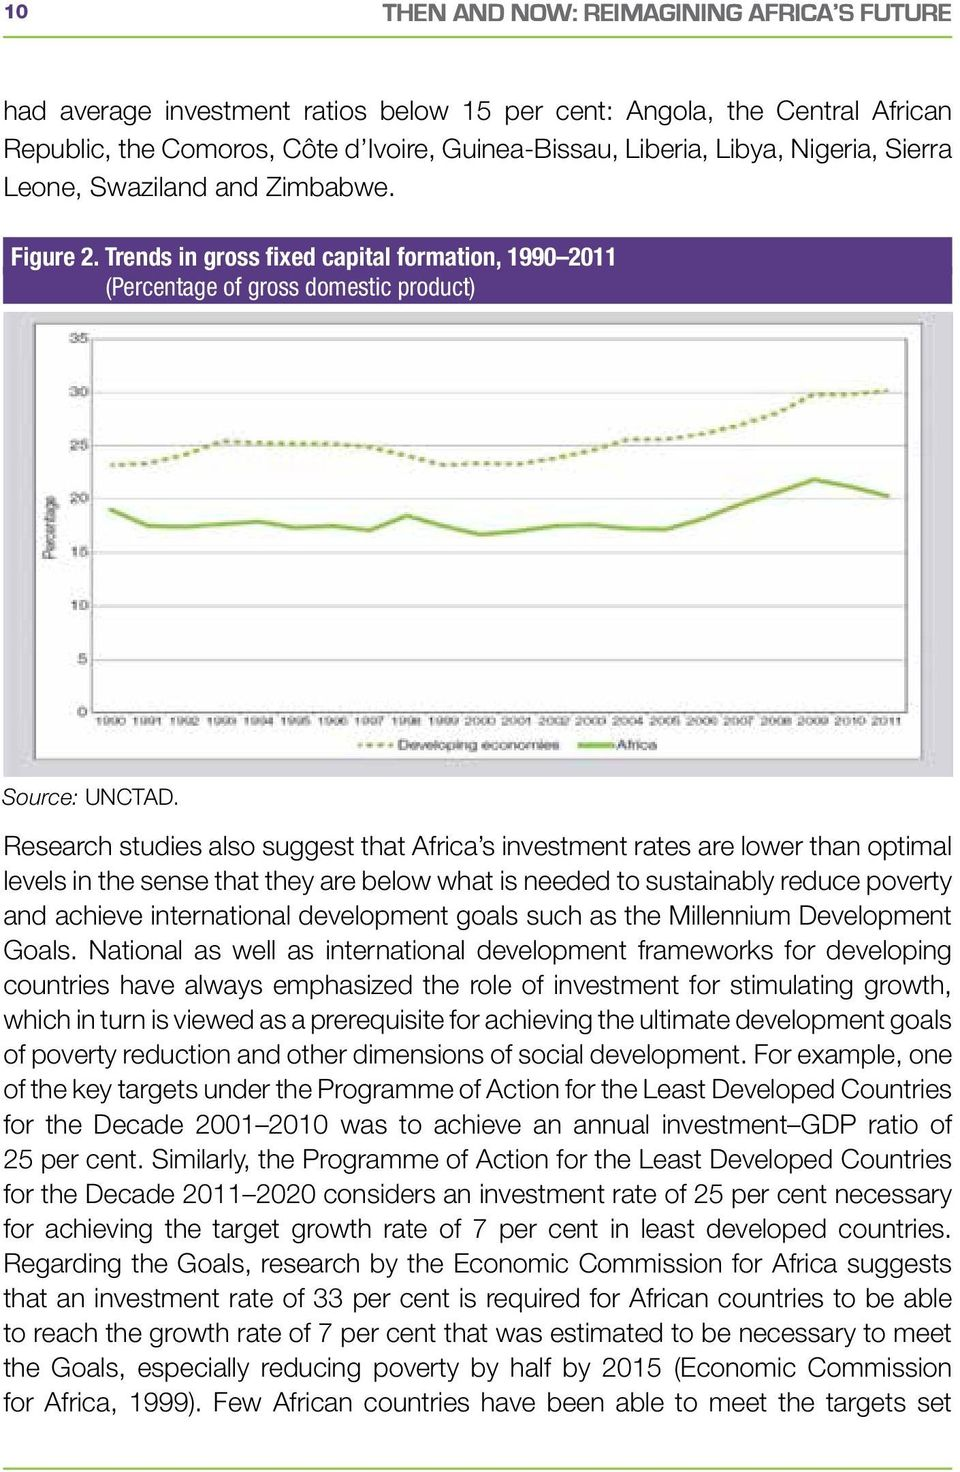 Research studies also suggest that Africa s investment rates are lower than optimal levels in the sense that they are below what is needed to sustainably reduce poverty and achieve international